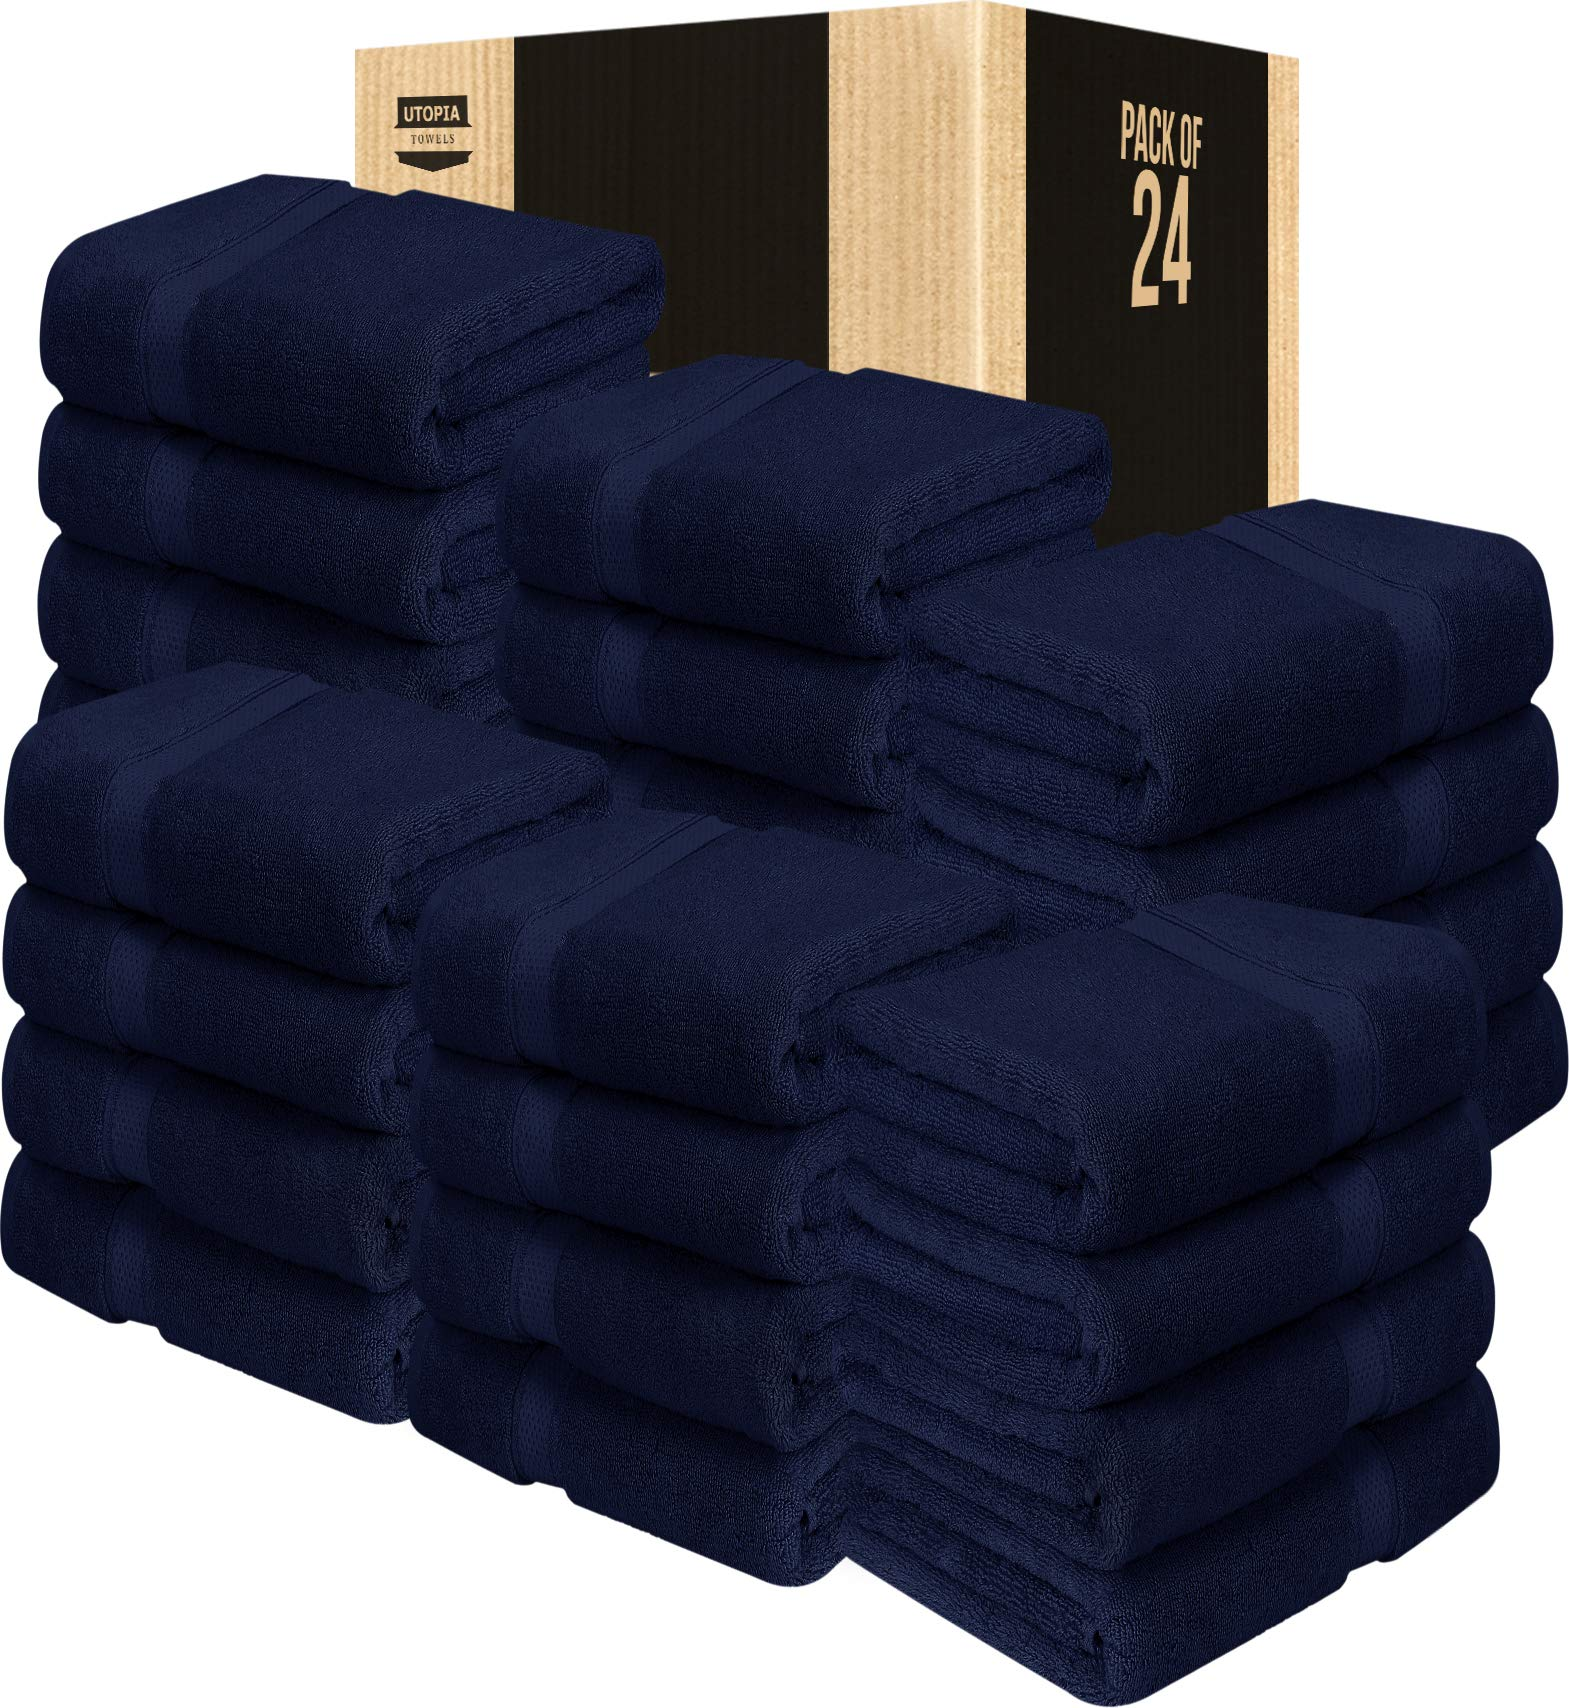 Utopia Towels 24 Pack Premium Bath Towels Bulk (27 x 54 inches Towel Set Bulk), Navy